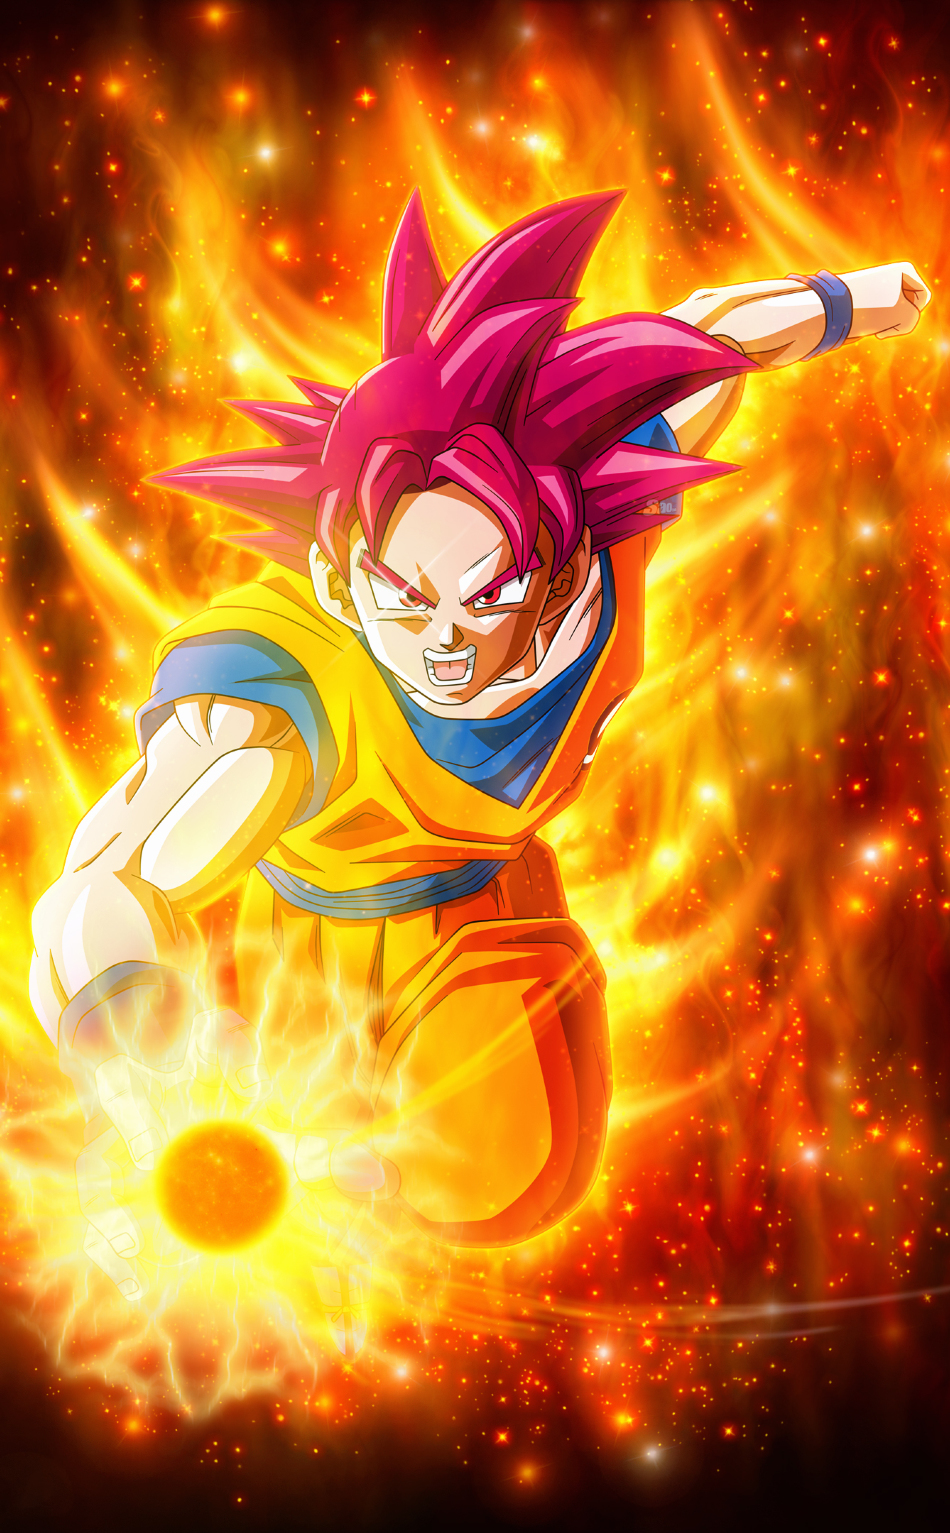 Super saiyan god goku dragon ball hd 4k wallpaper - 4k wallpaper of god ...